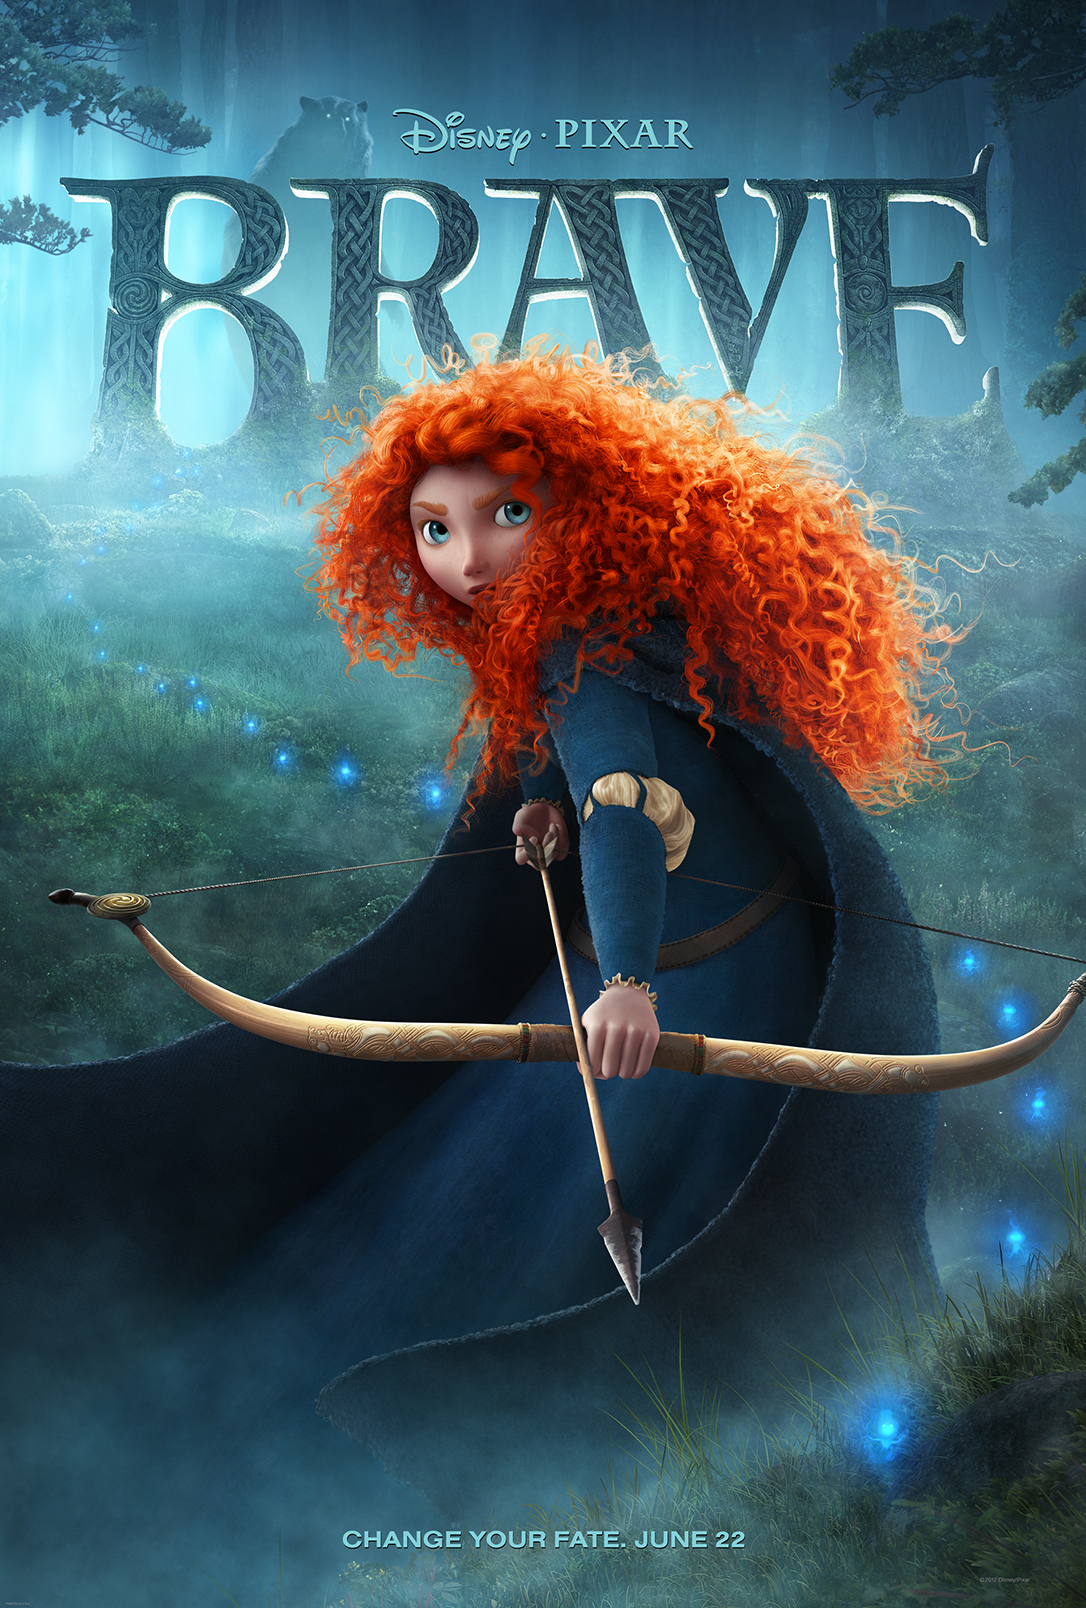 WATCH: 'Brave' Makes Splash At Oscars With New TV Spot